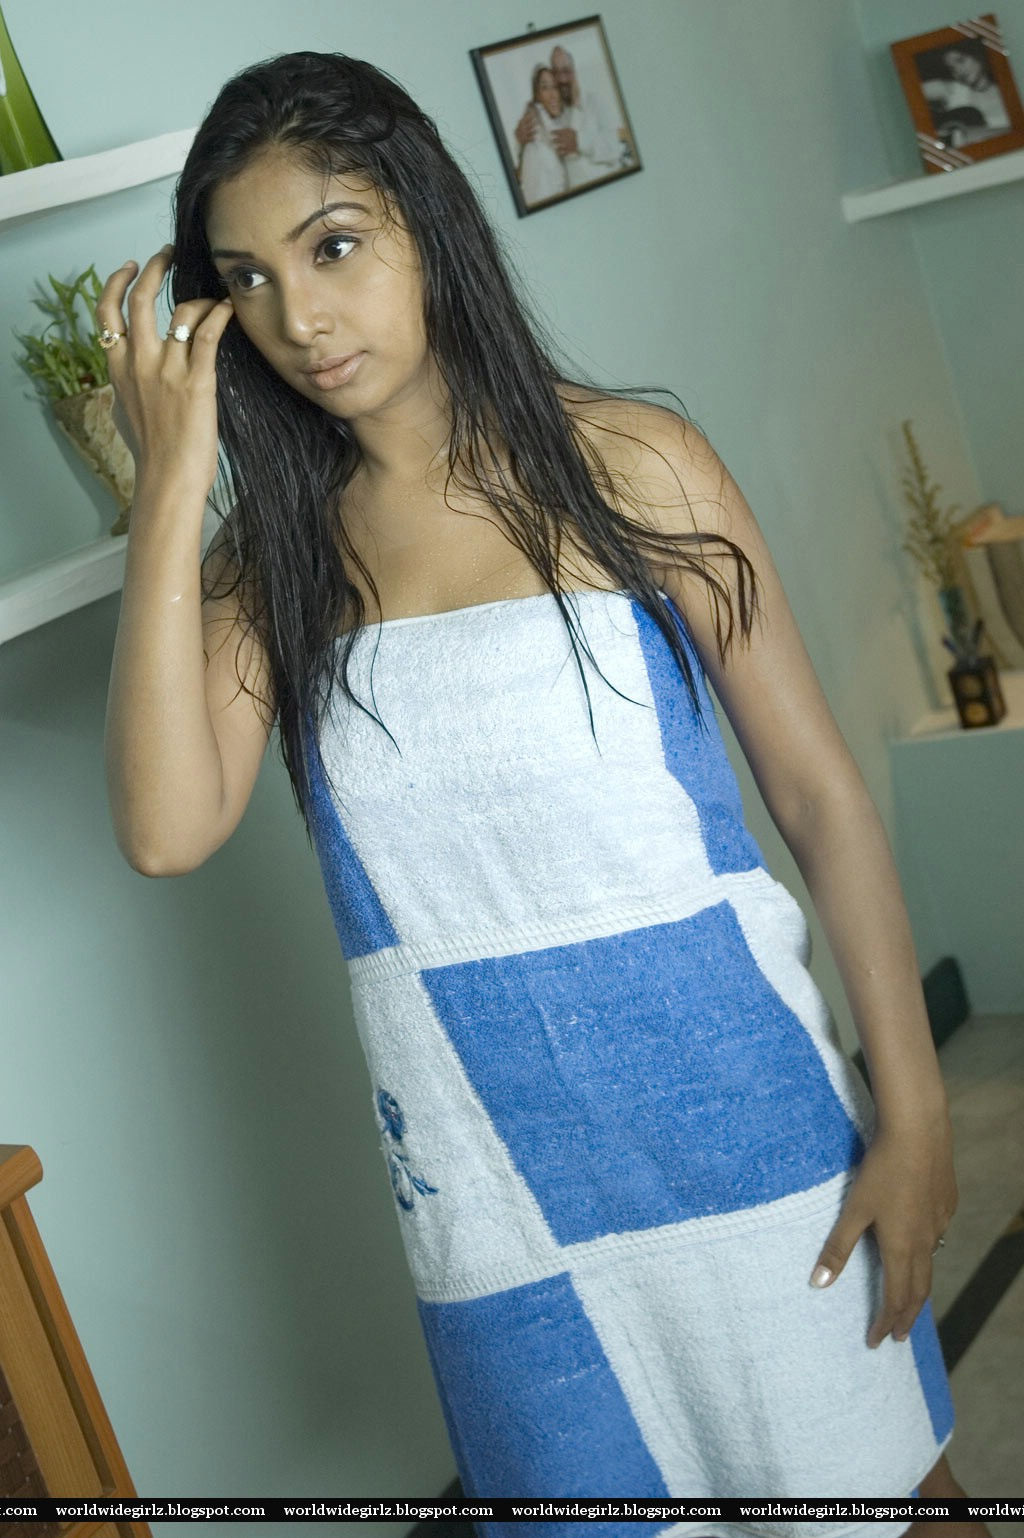 Hot Girl Midhuna In Bath Towel Spicy Pictures-8610